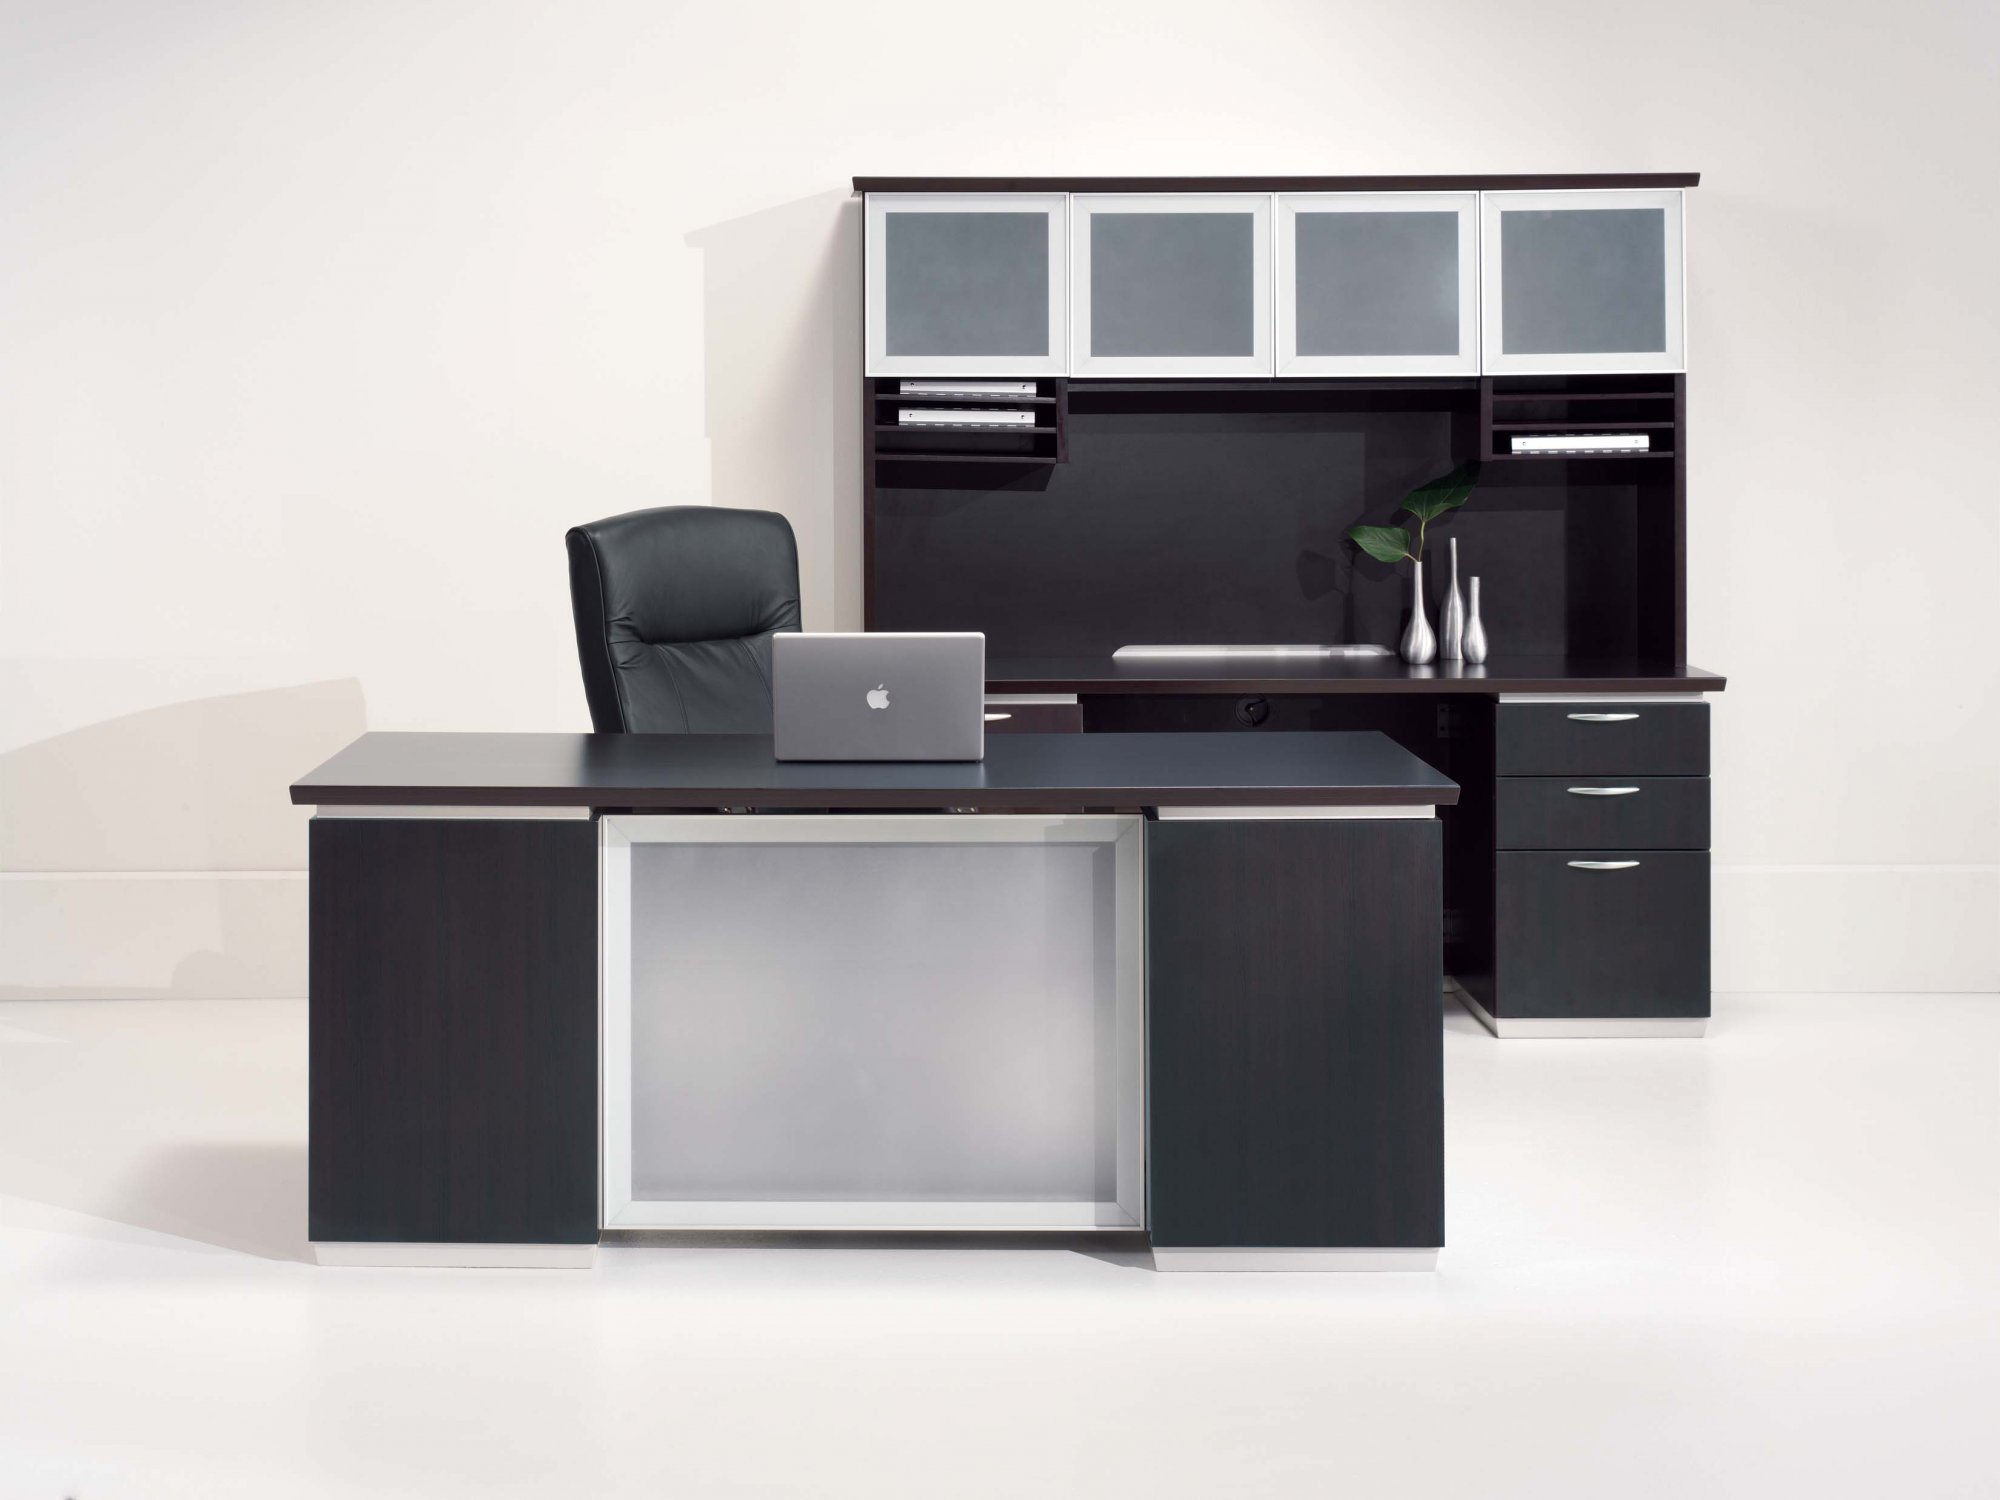 Flexsteel Pimlico  Executive Desk with Frosted Glass Modesty Panel